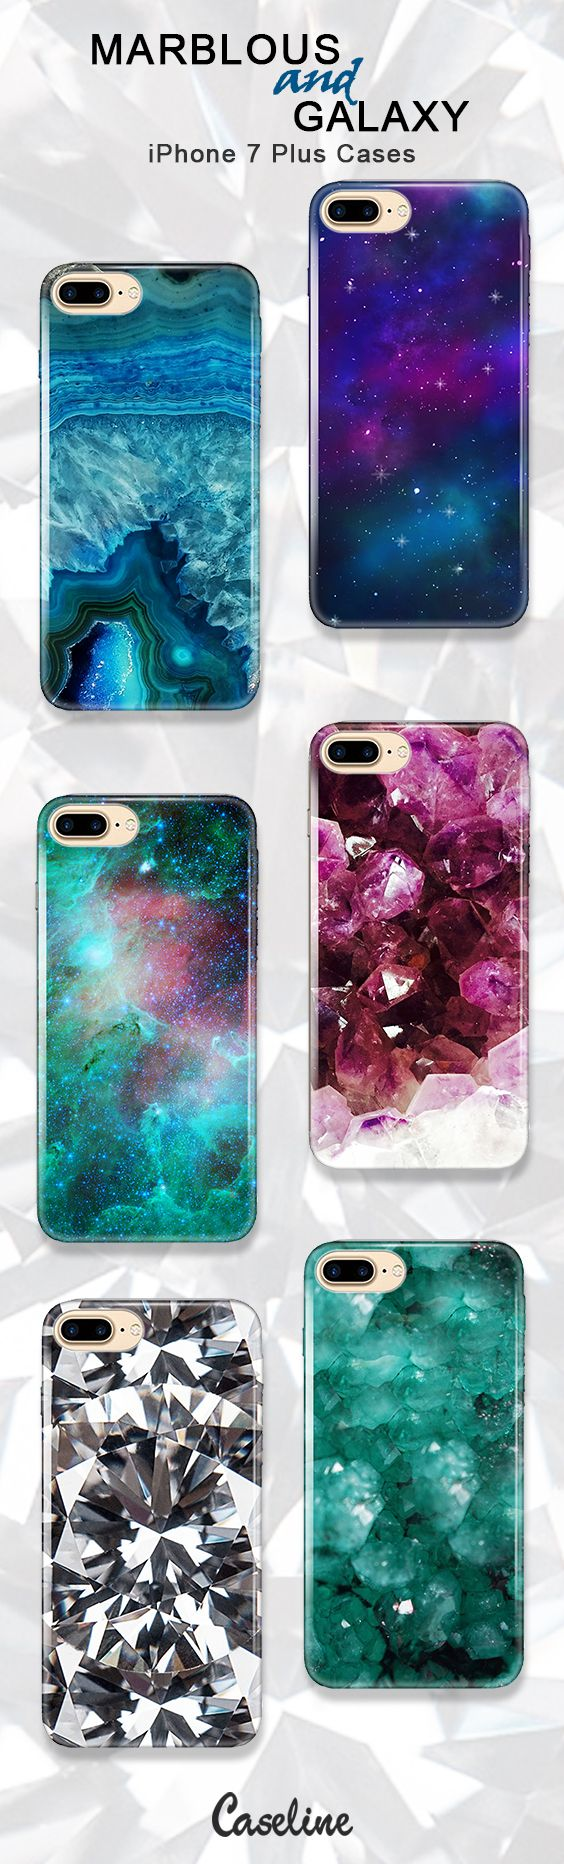 caseline galaxy case cover apple iphone 7 plus marblous marble phonecases lineofcases beautiful sky blue stars space